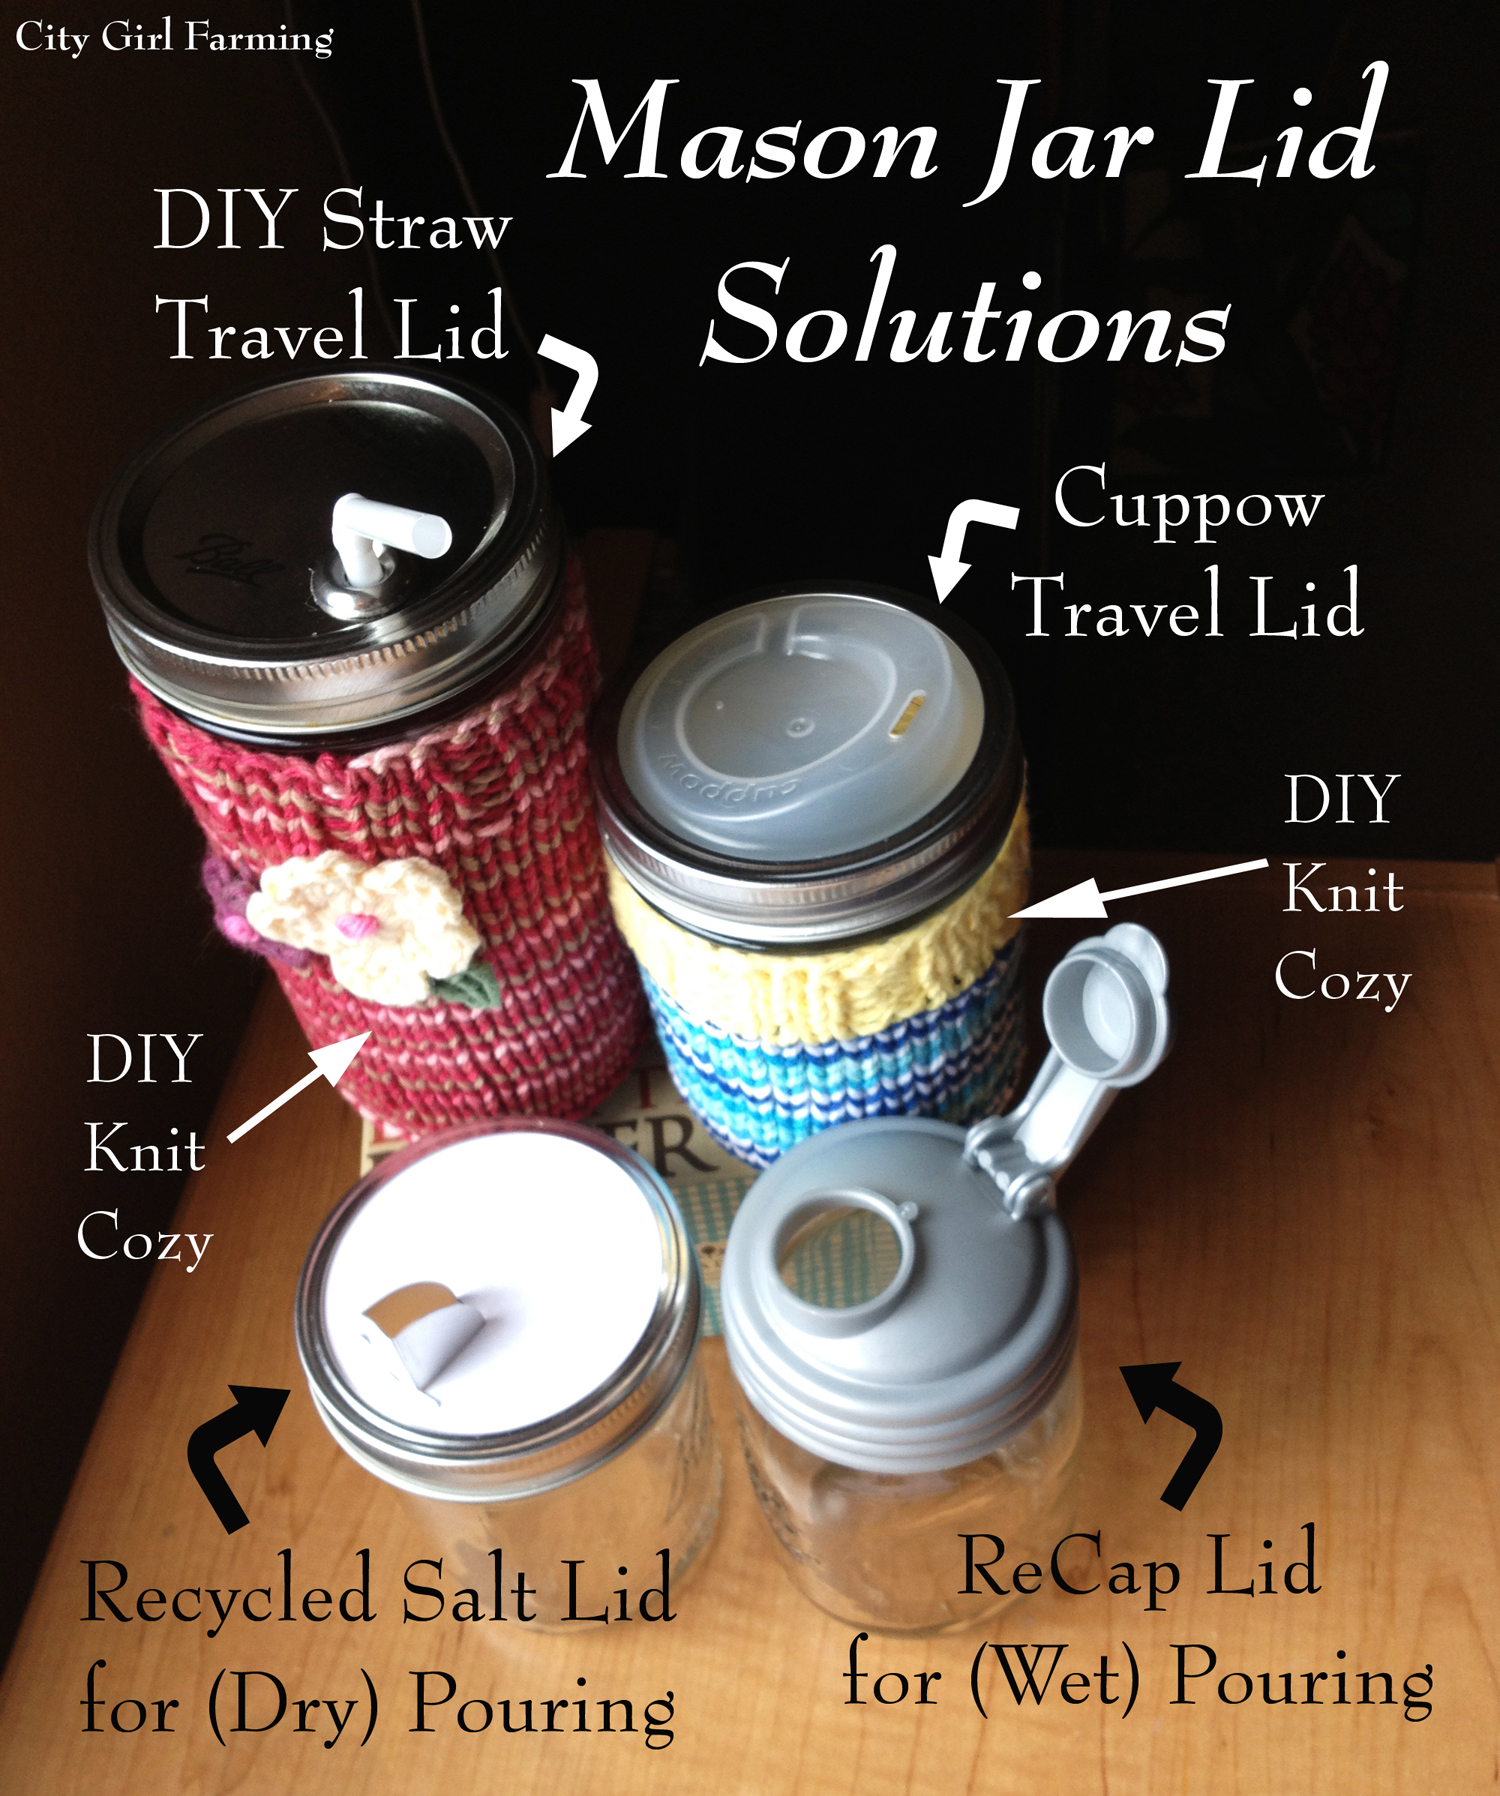 (Practical) Mason Jar Gifts (and Solutions) - CITY GIRL FARMING